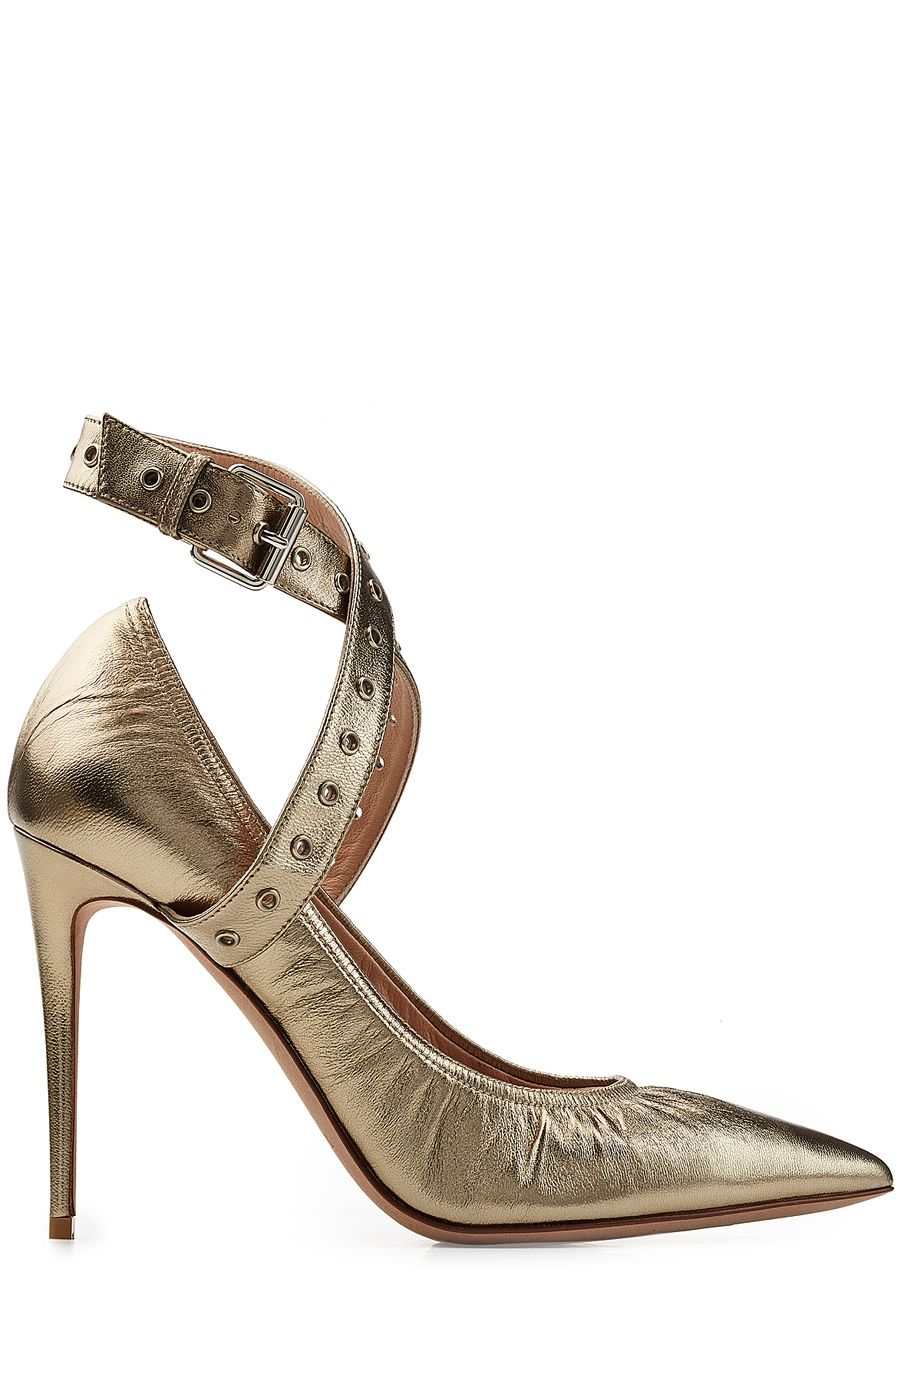 VALENTINO Metallic Leather Cross-Front Pumps. #valentino #shoes #pumps